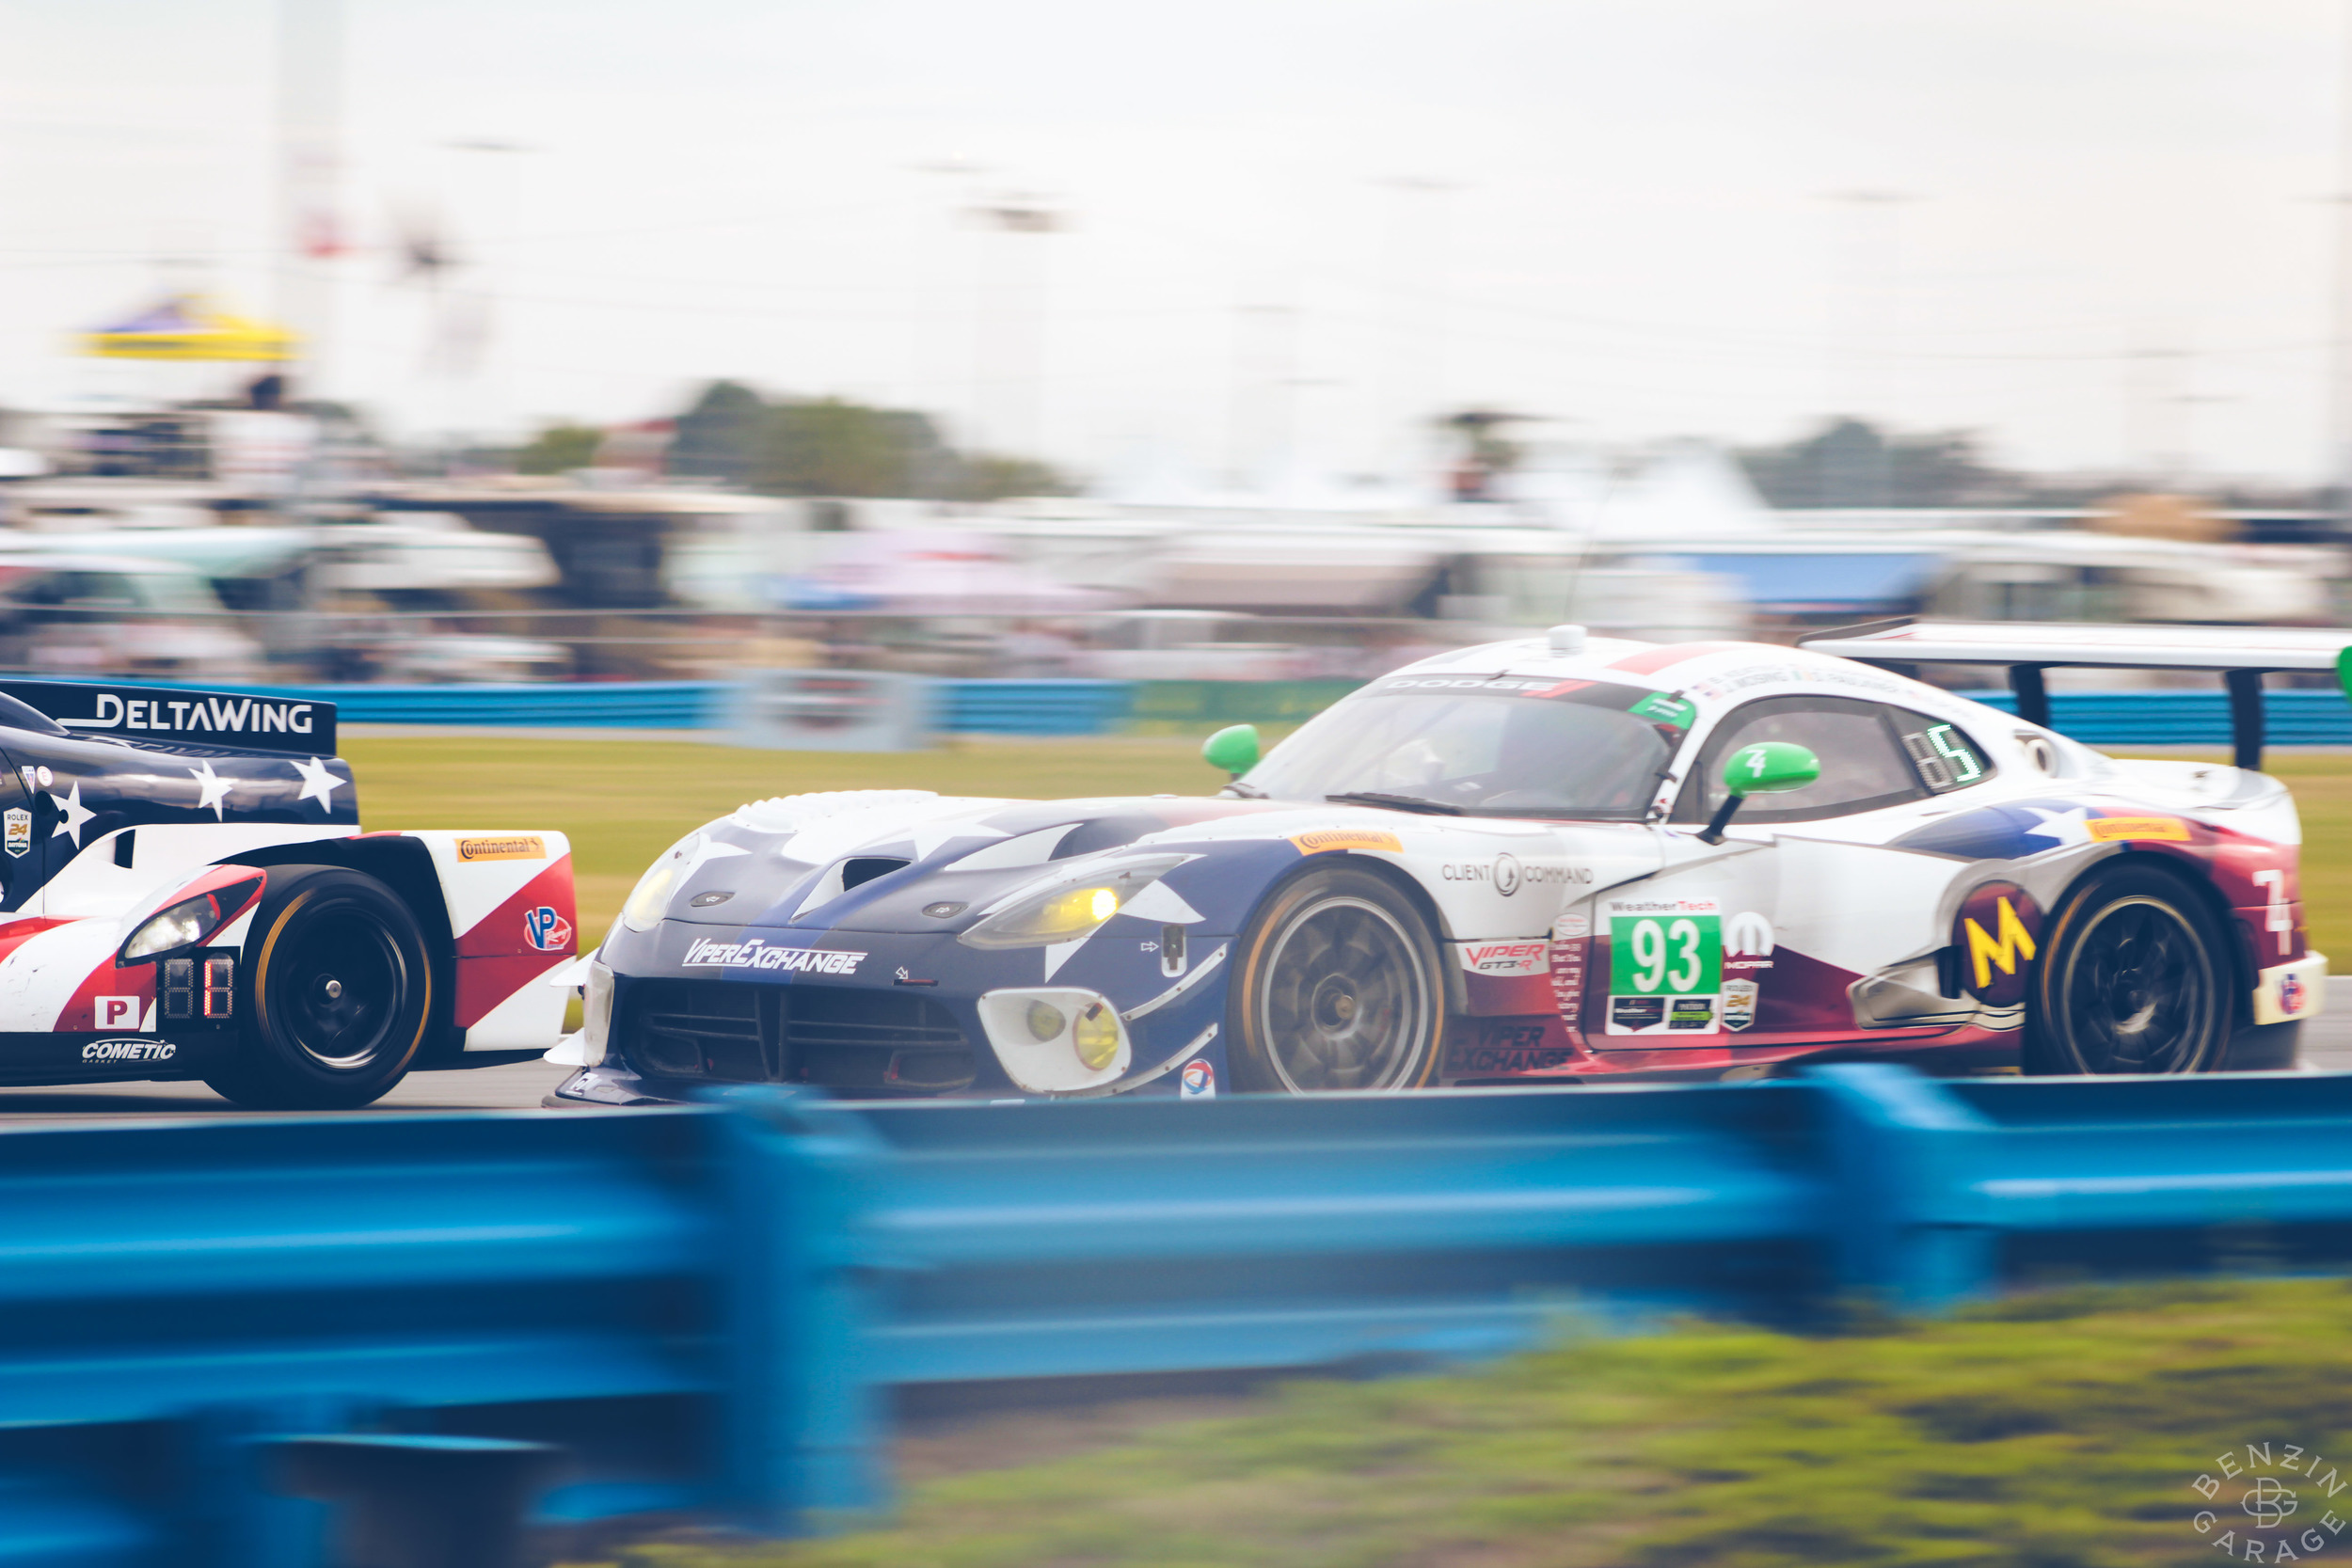 Even though the Viper factory team dropped the mic and withdrew from competition after winning the 2014 GTLM championship, the model still dominates in GTD.They even made an appearance at Le Mans last year, and are hoping to return.